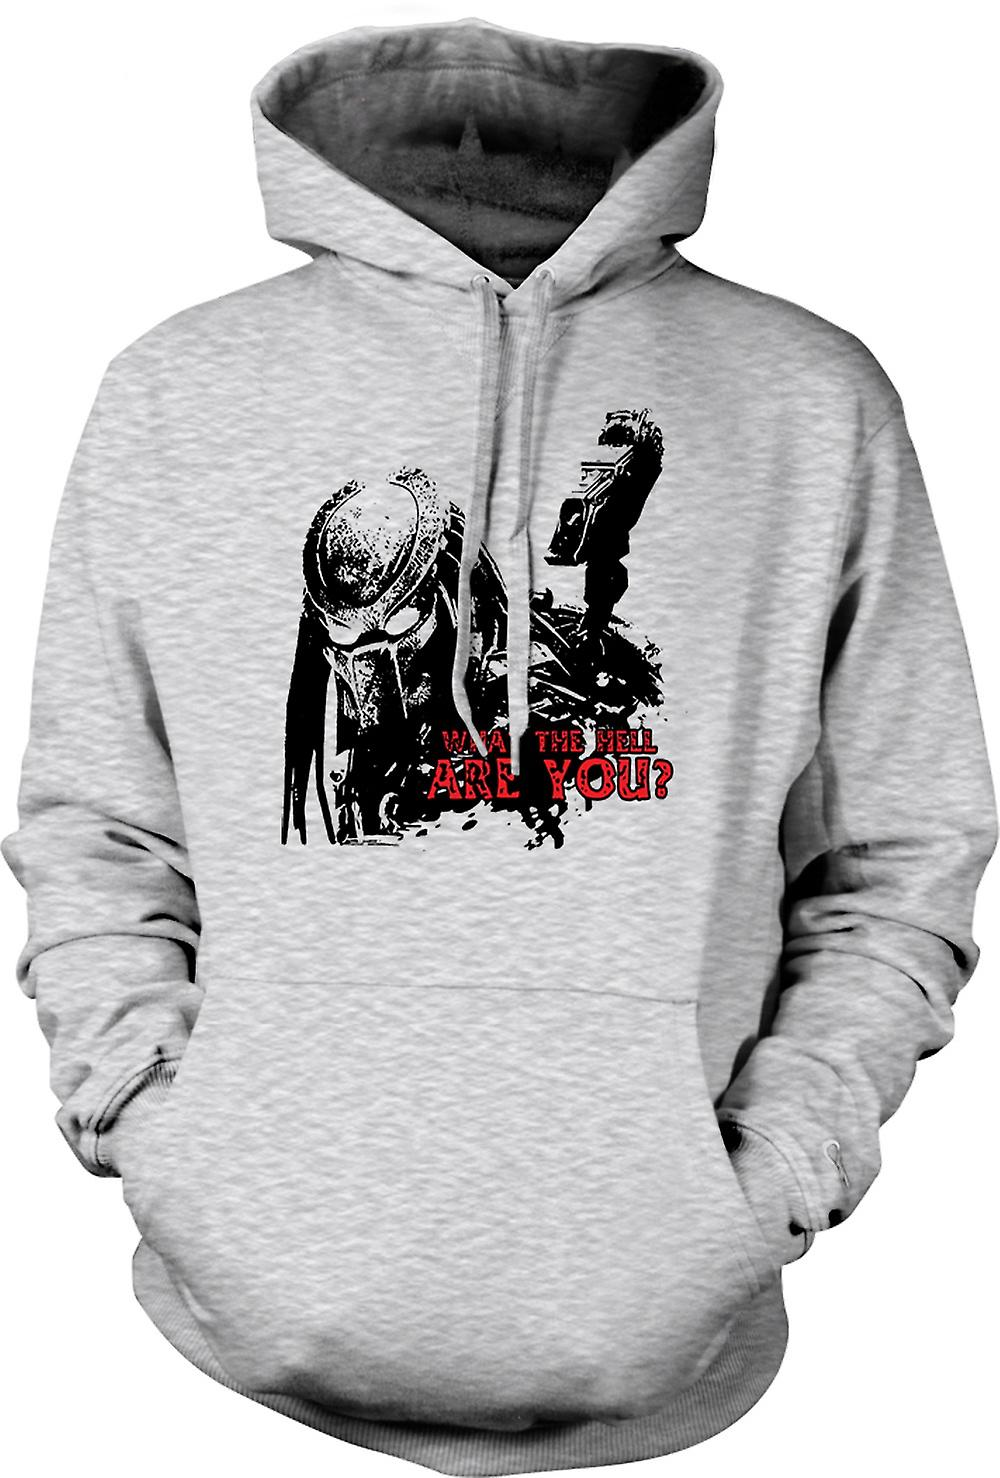 Mens Hoodie - Predator What The Hell - Alien